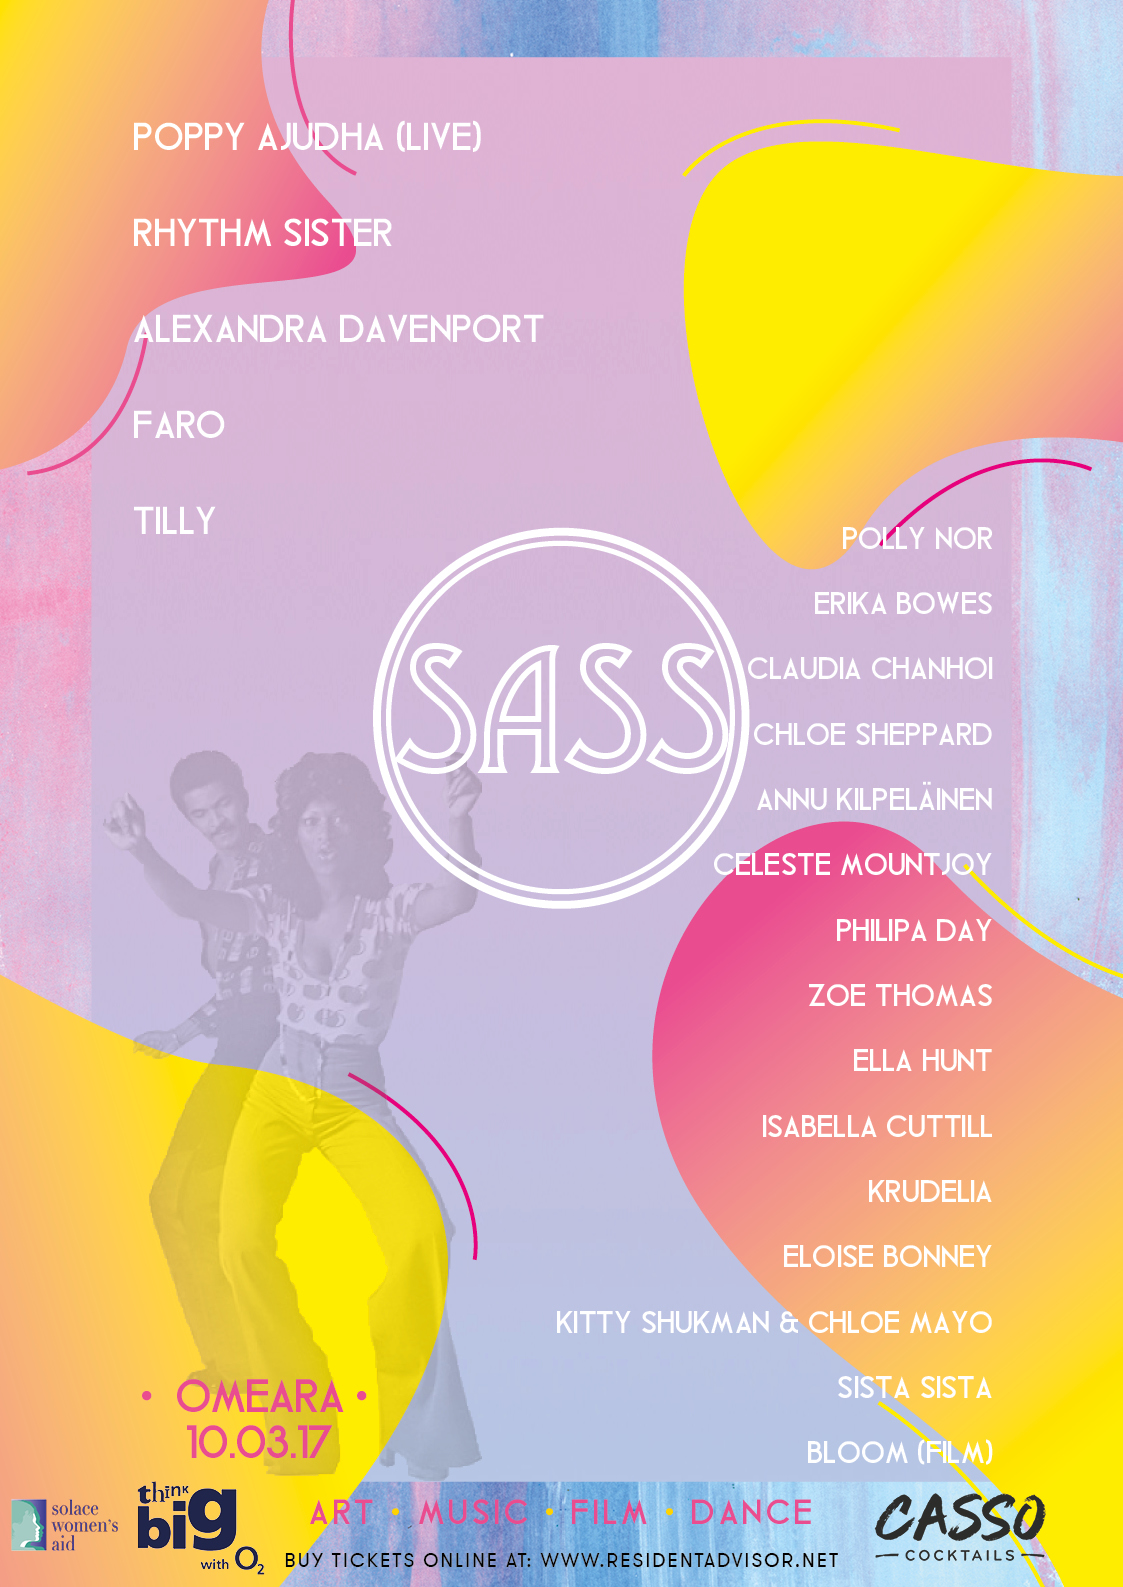 SASS Event - Poster and Promotional Material Design - 2017